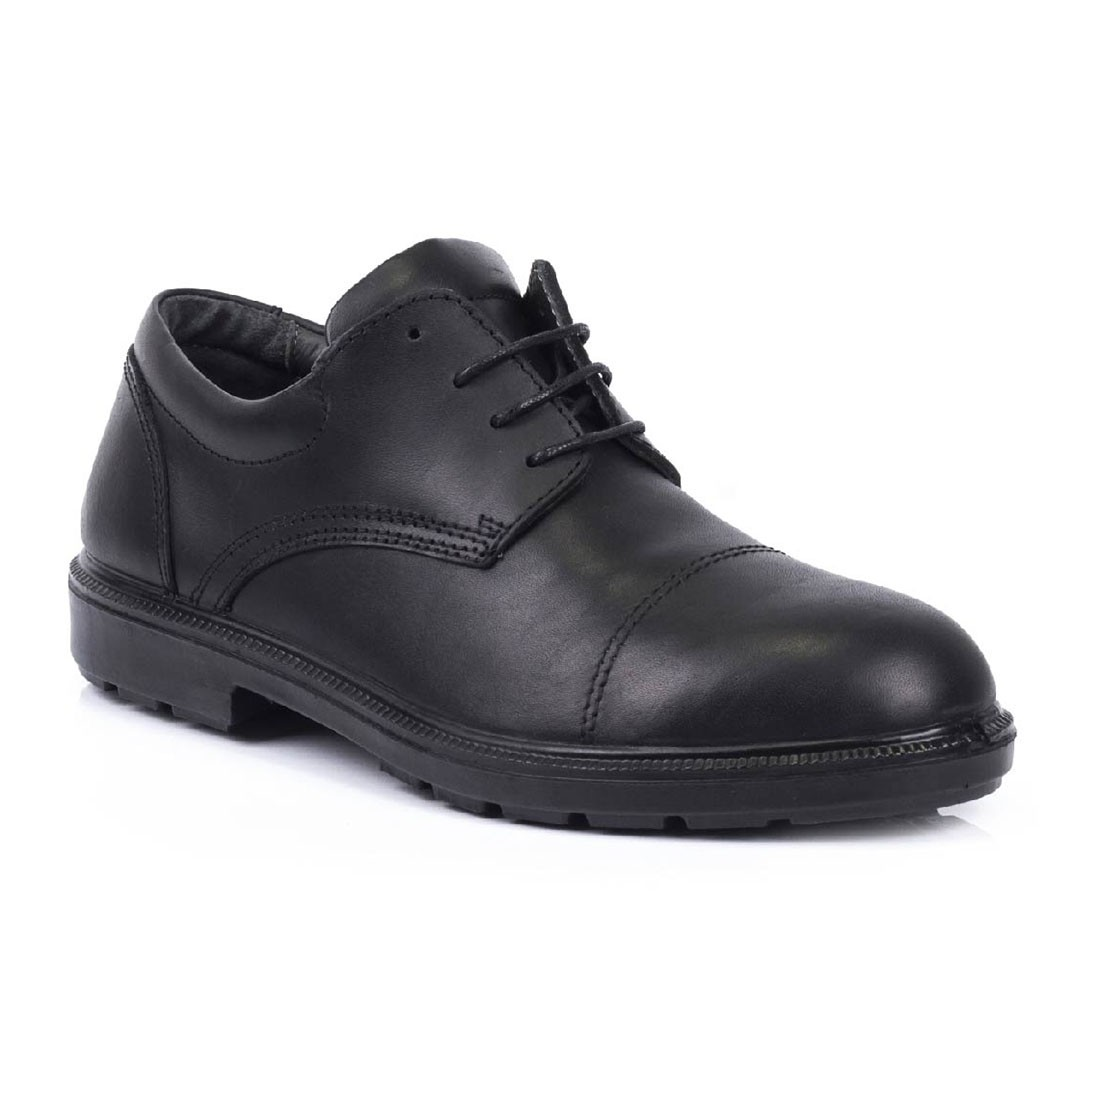 Lavoro Cambridge Executive Black Leather S3 Safety Shoes